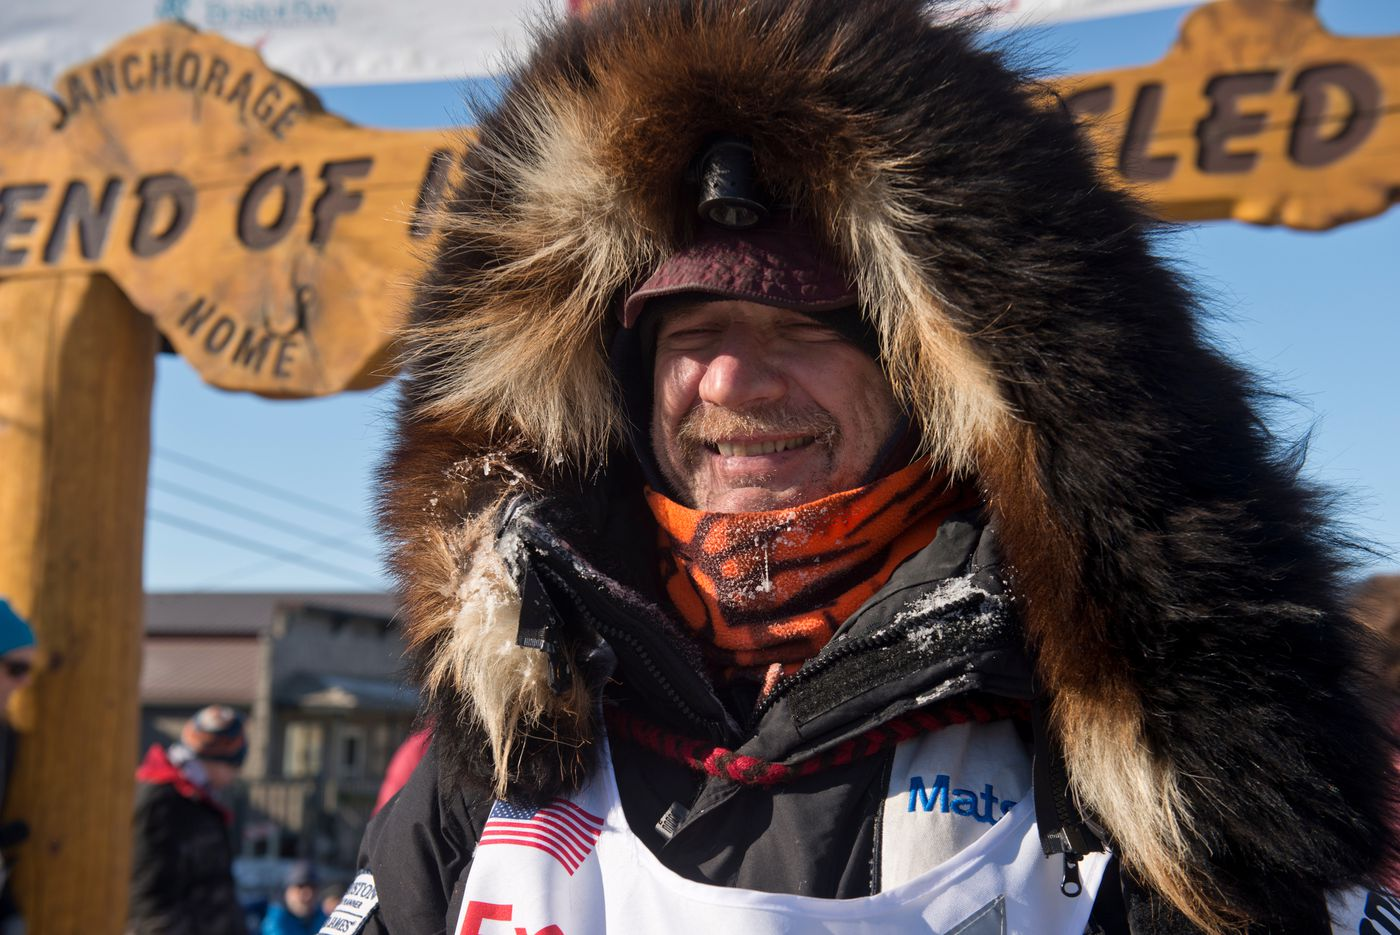 Allen Moore arrived in Nome to finish Iditarod on March 16, 2016. (Marc Lester / ADN archive)